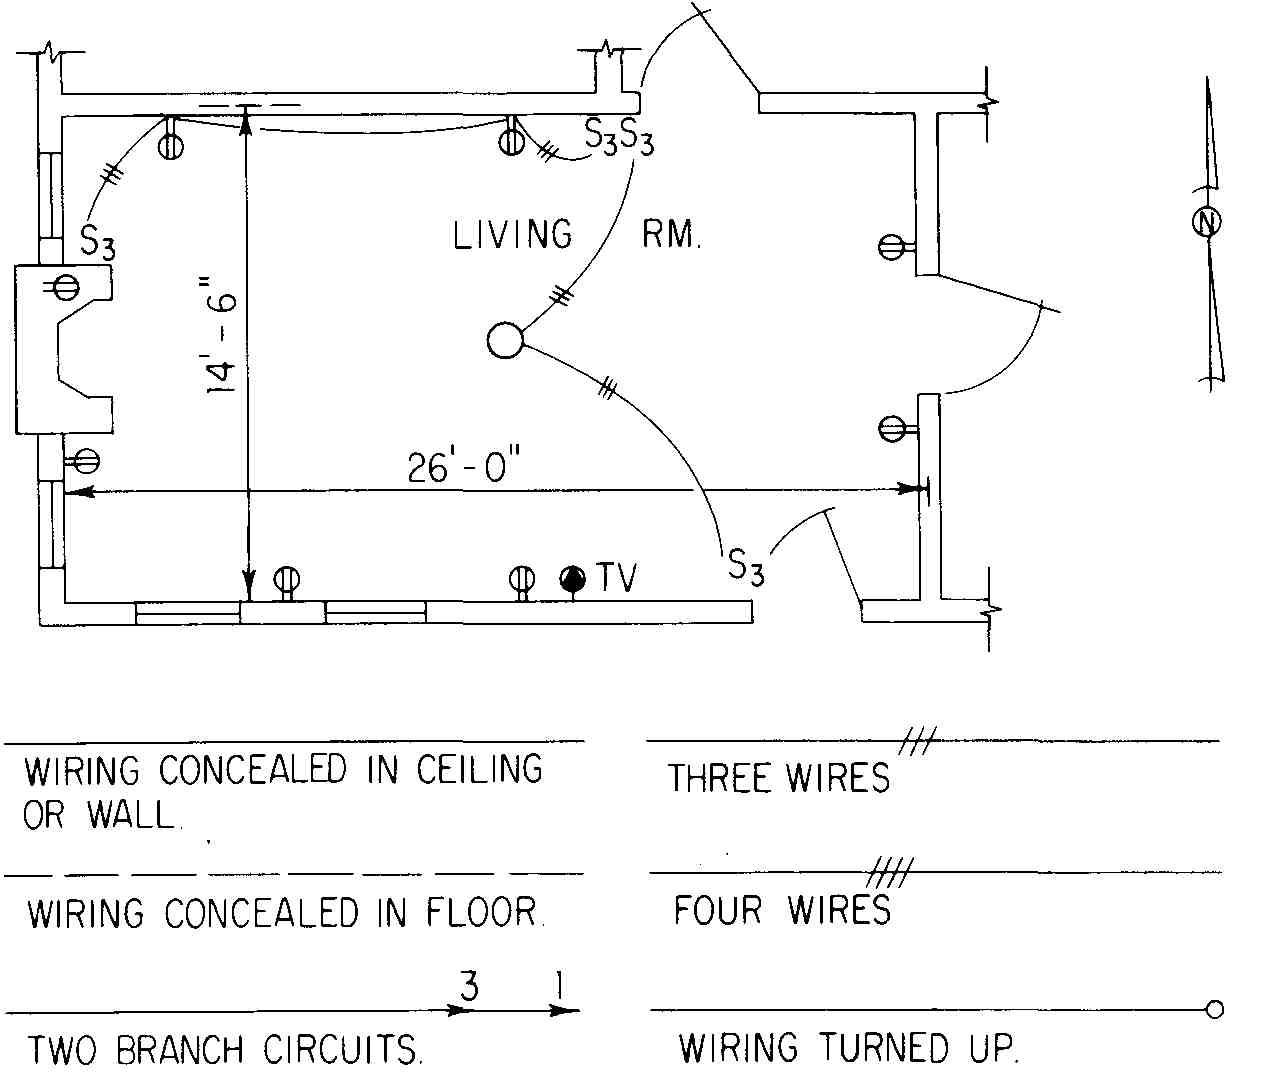 Electrical Drawing For Architectural Plans Wiring Diagrams Basement Finish